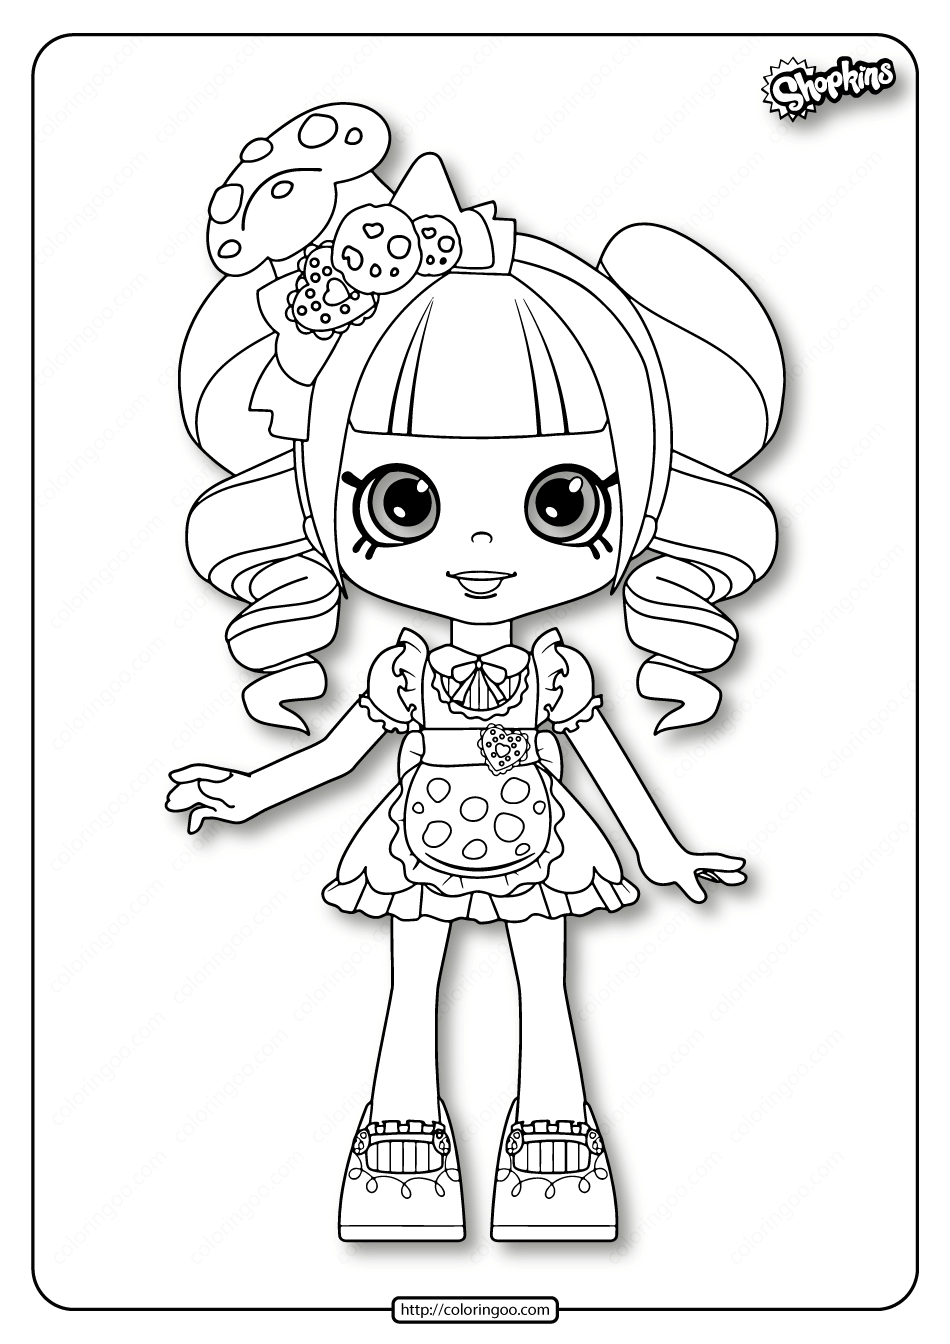 Printable Shopkins Coco Cookie Coloring Pages